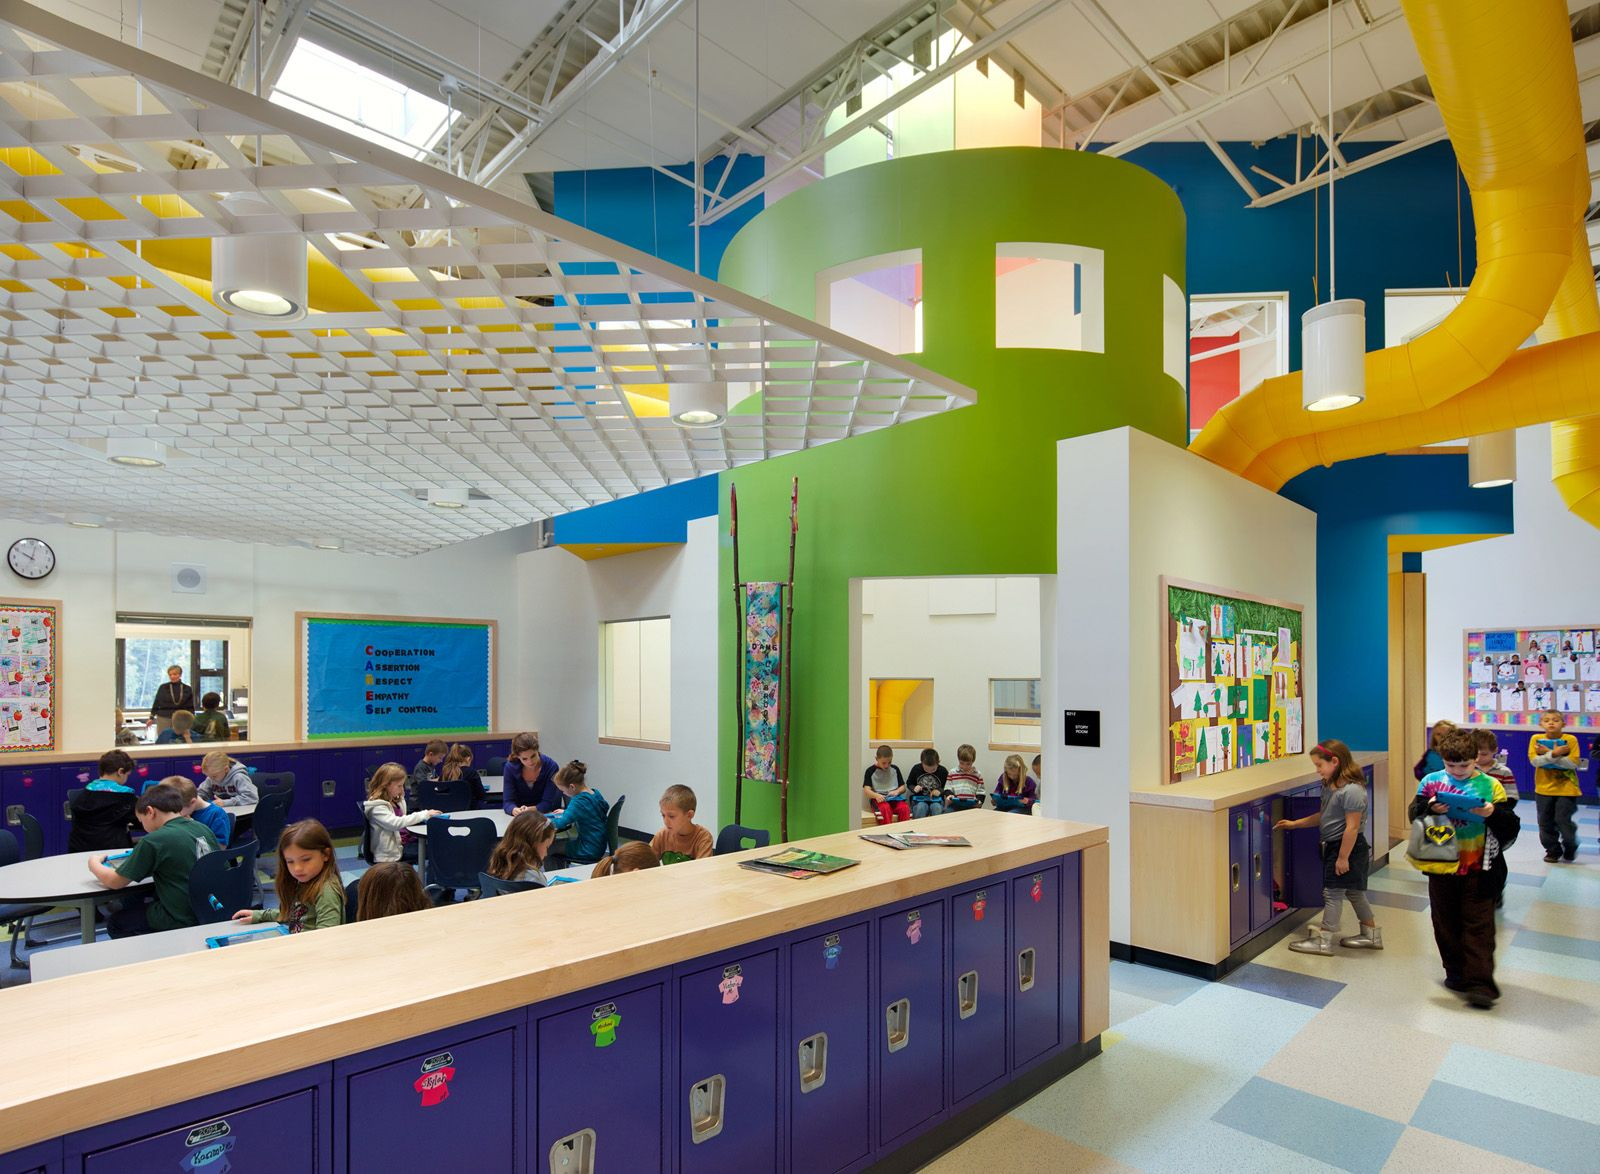 Design The Ideal Classroom For The Elementary Grades ~ Modern elementary classroom design pixshark